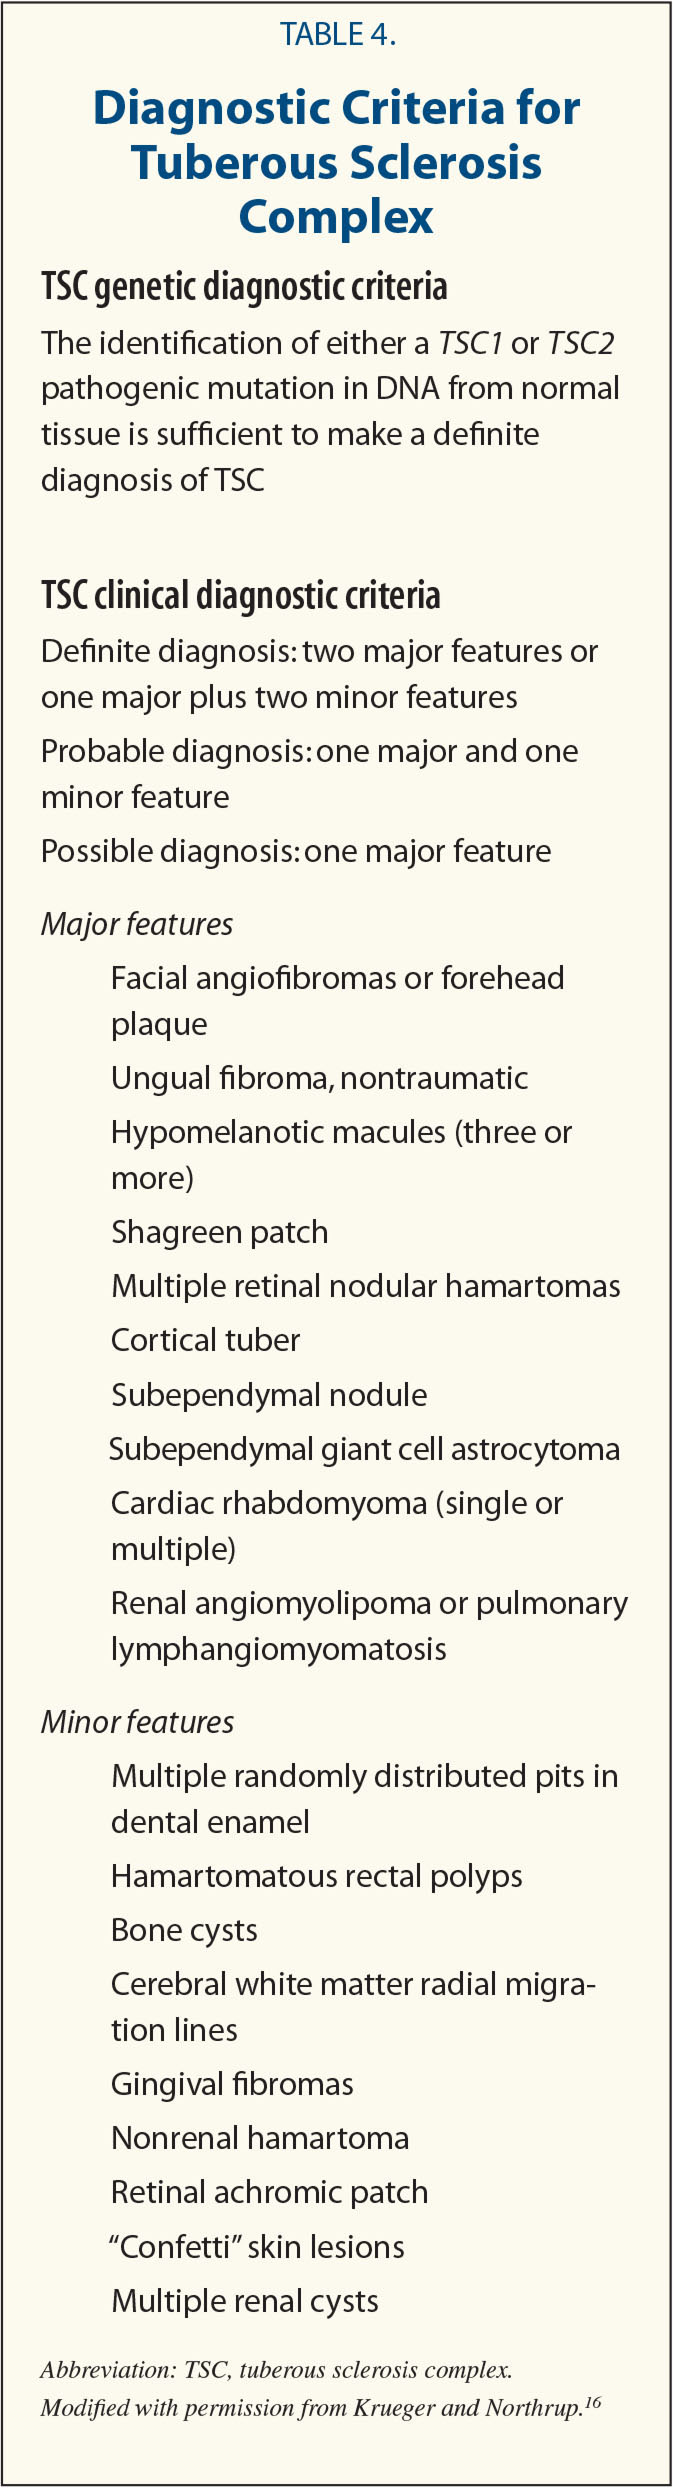 Diagnostic Criteria for Tuberous Sclerosis Complex